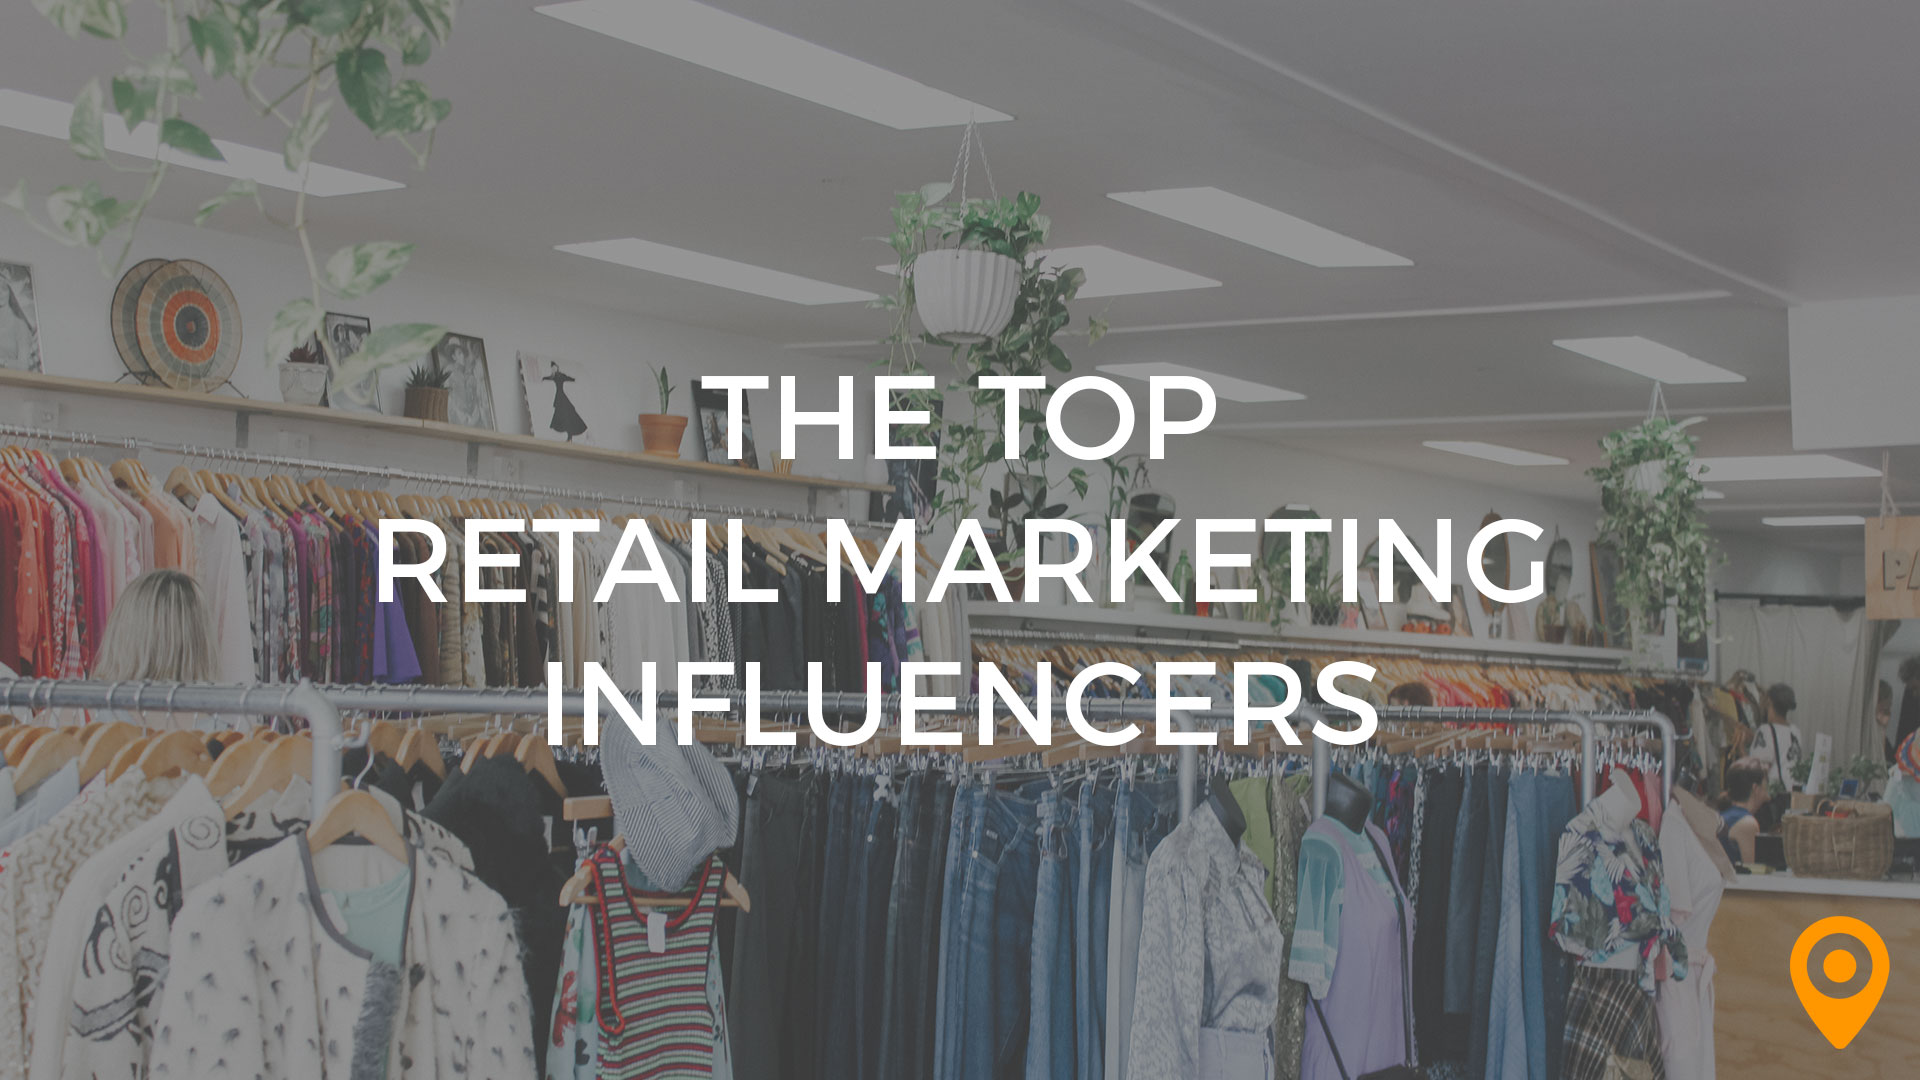 The Top Retail Marketing Influencers